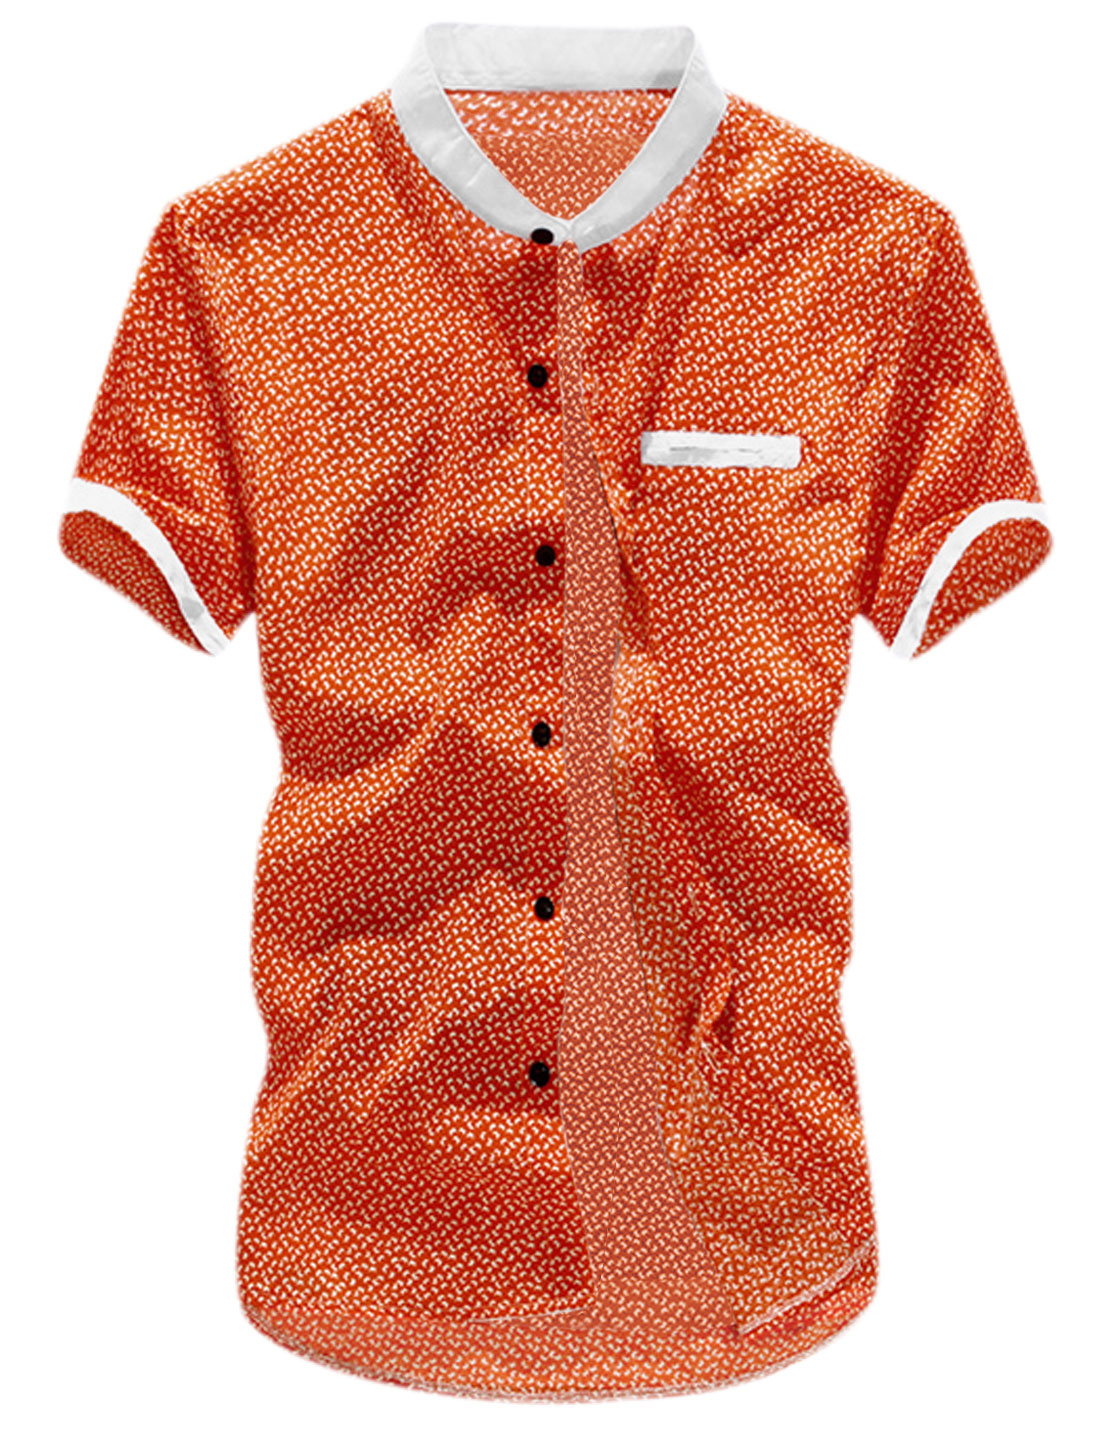 Men Stand Collar Mini Butterfly Prints Casual Shirt Orange M